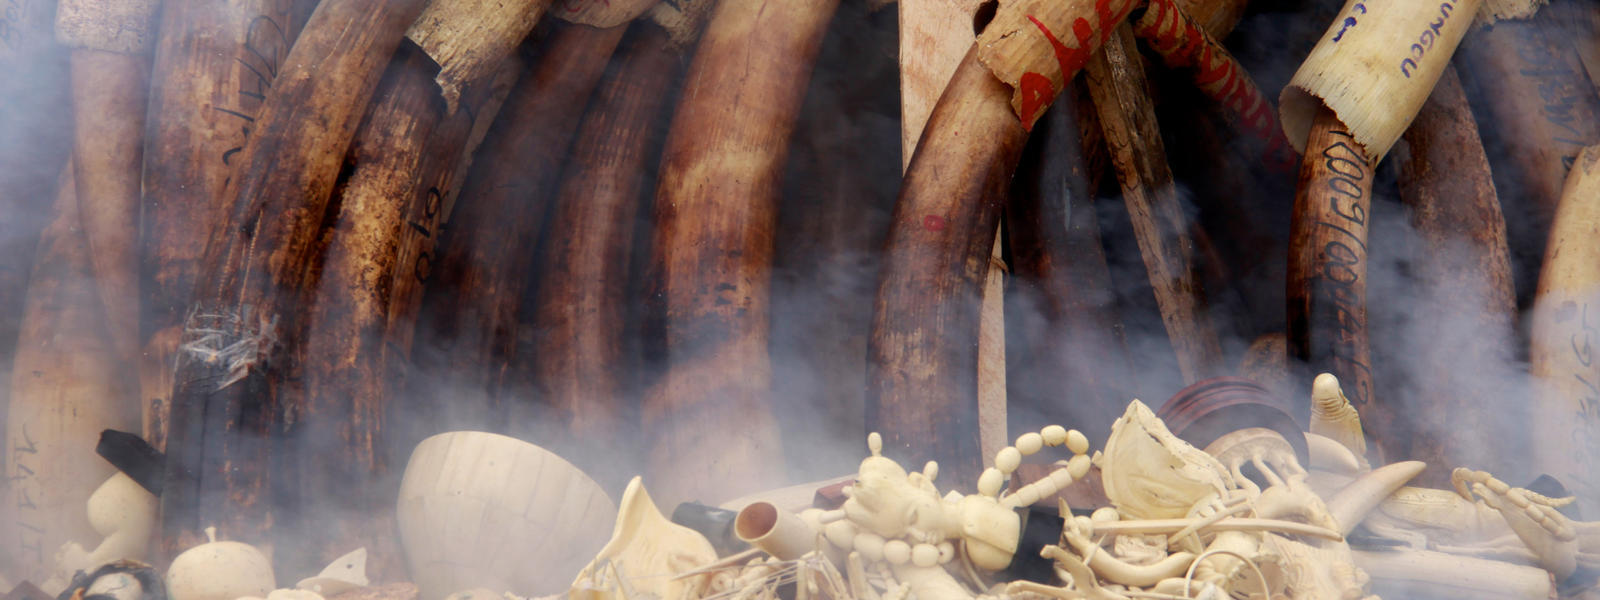 Elephant tusks and ivory products and trinkets go up in flames during the burning of Gabon's illegal ivory